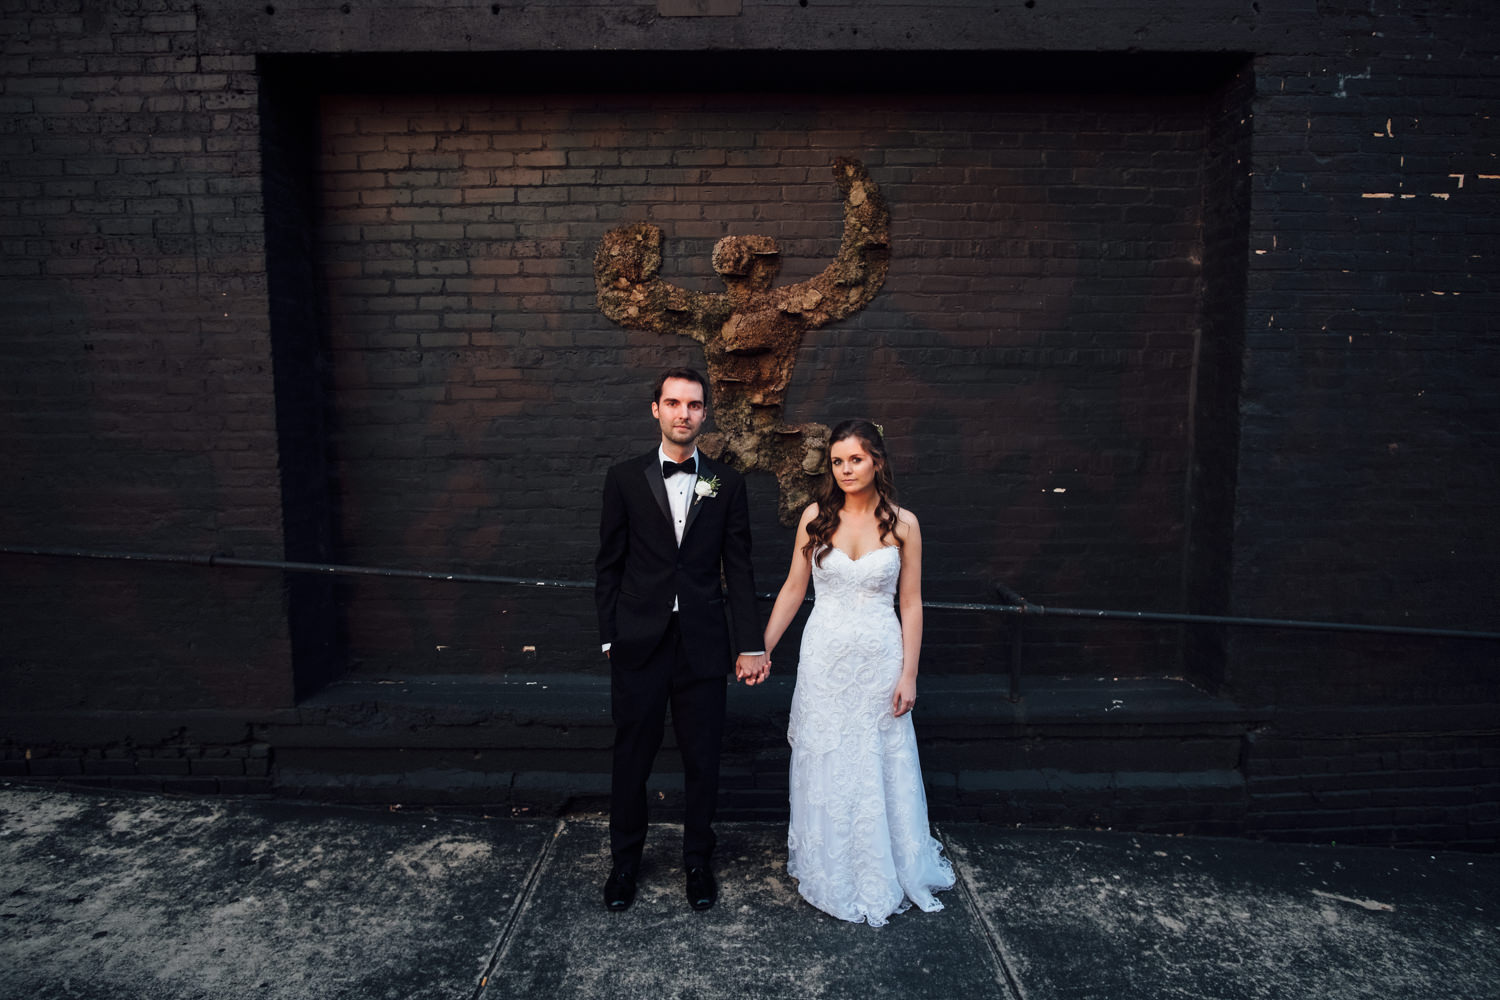 Bride and Groom Portrait Chicago Wedding Cling & Peck